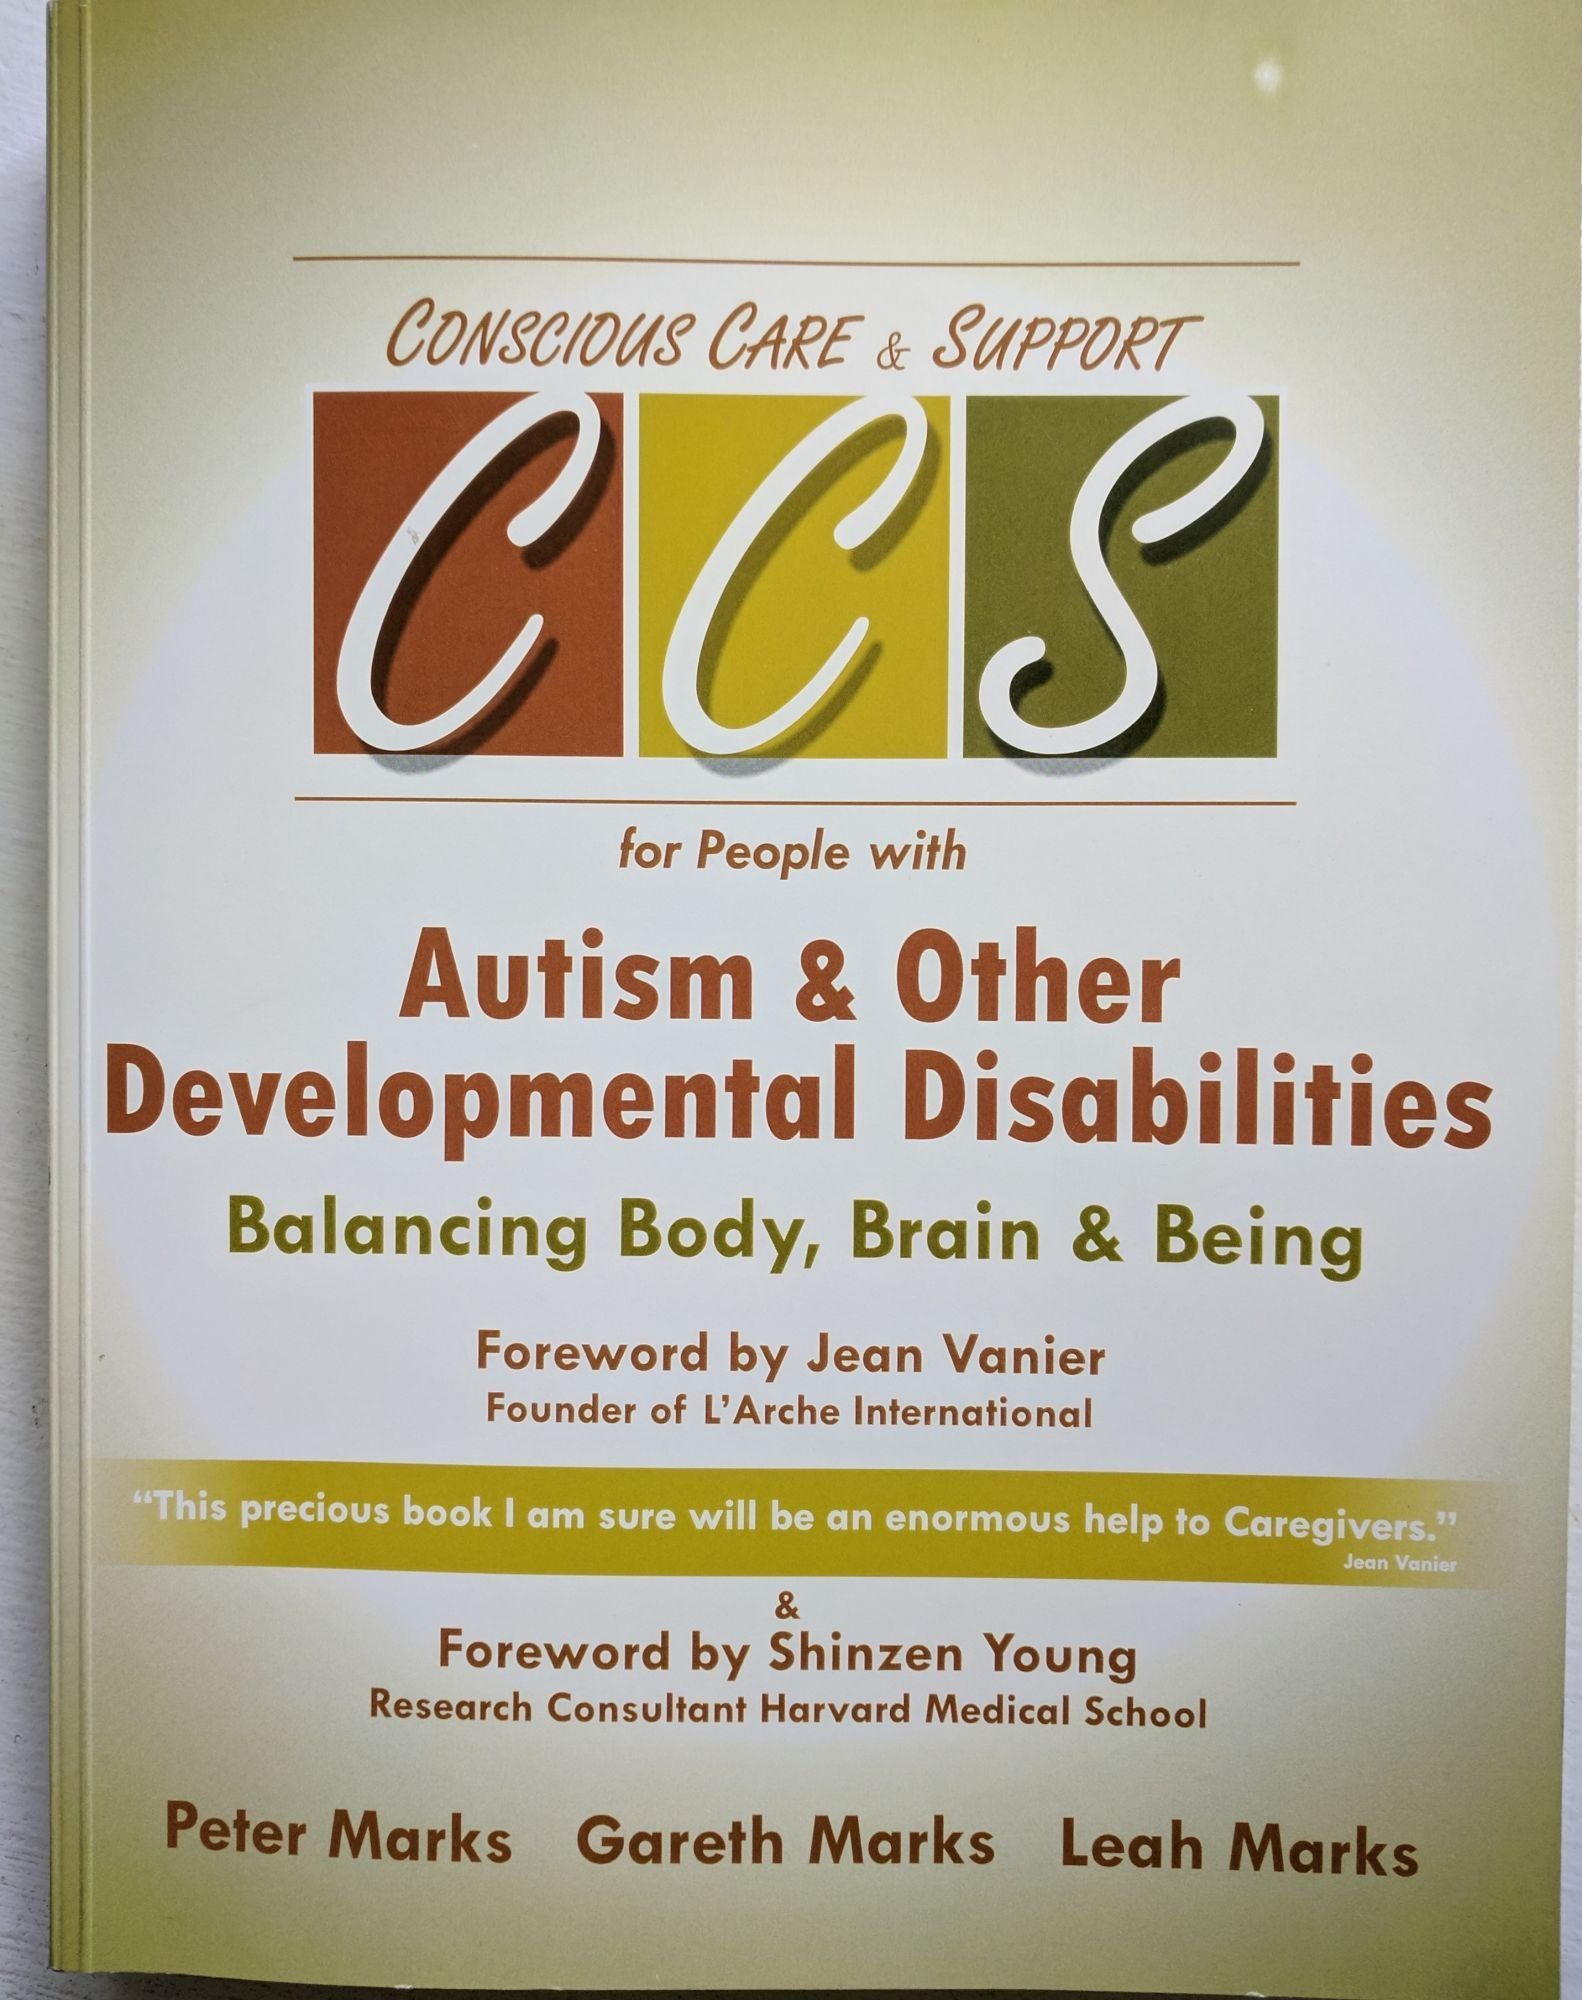 Autism & Other Developmental Disabilities